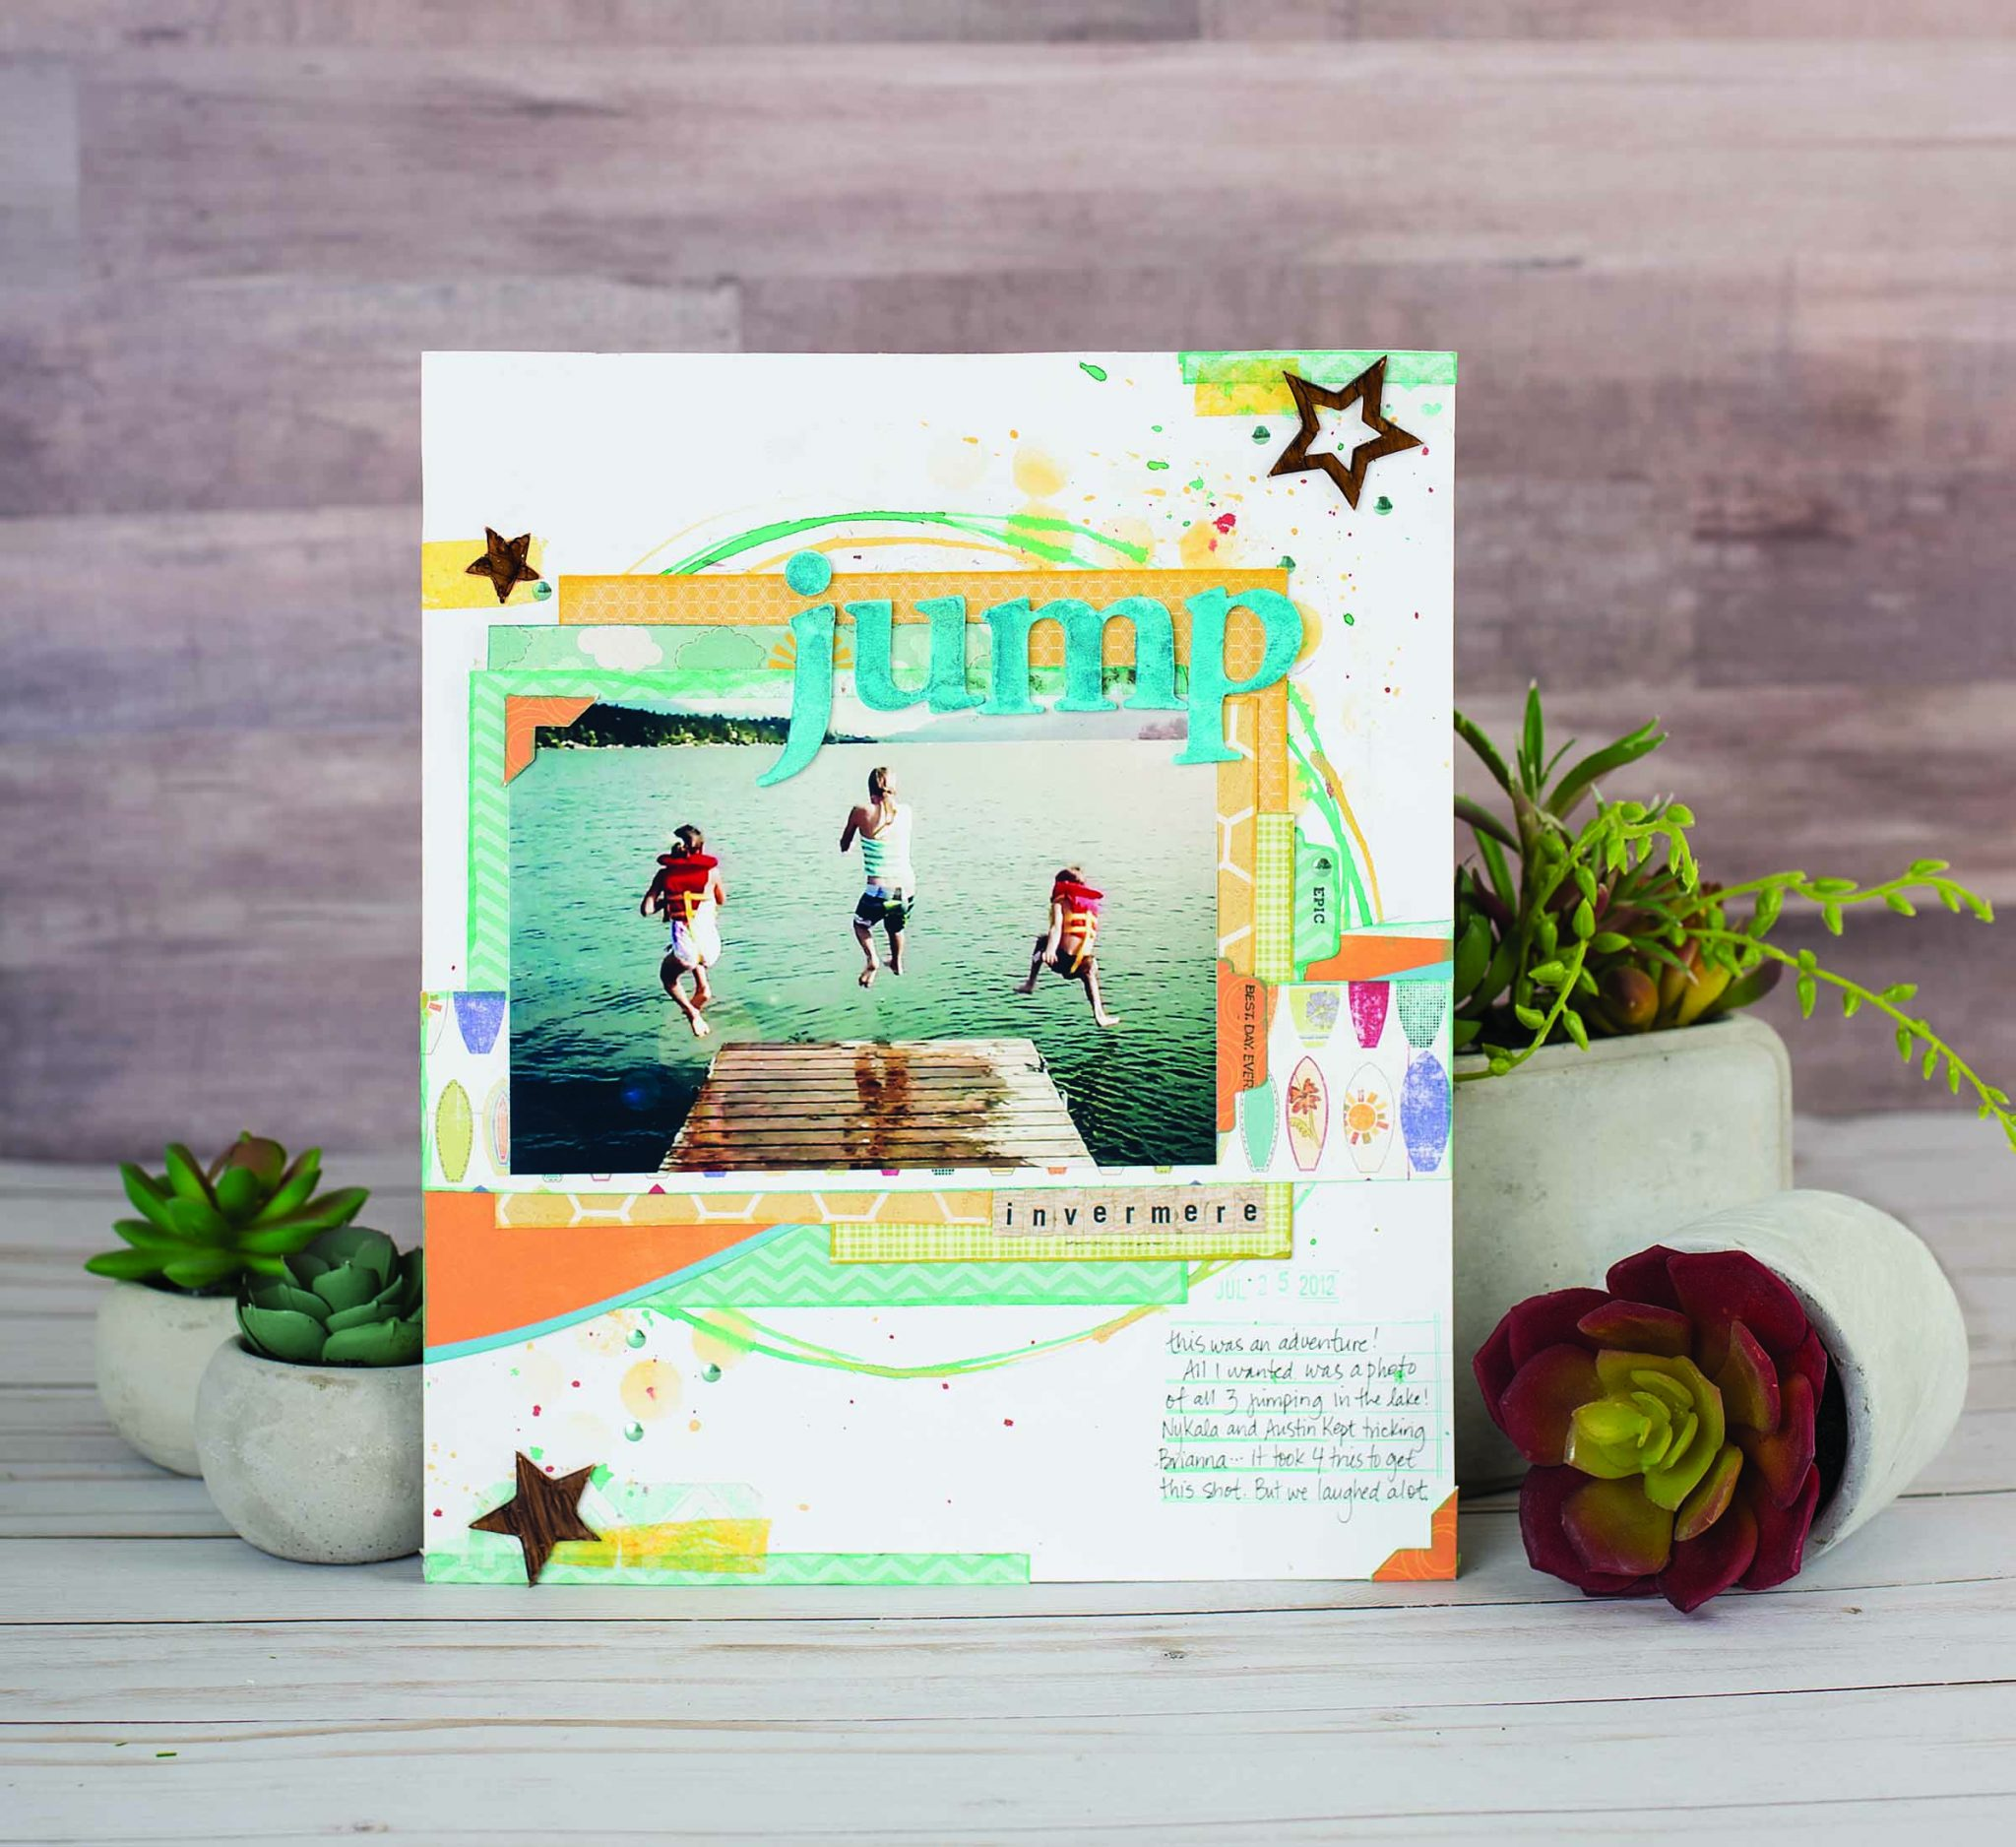 How to scrapbook on youtube - Make Sure You Connect With Creative Scrapbooker Magazine At A Stamp Scrapbook Expo In Your Area And On Social Media